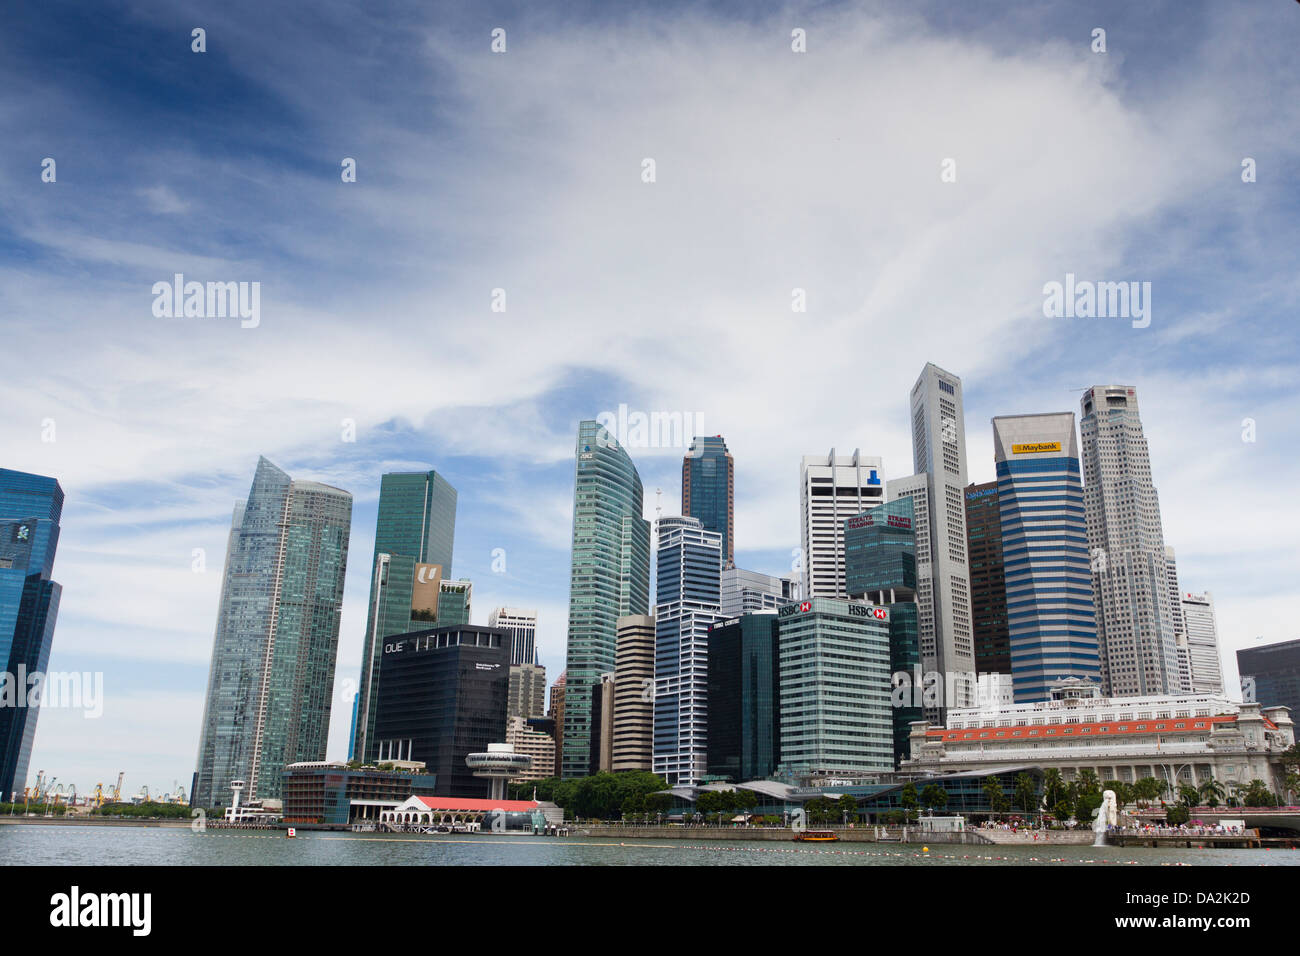 Financial/business district and banks from Marina Bay, Singapore - Stock Image